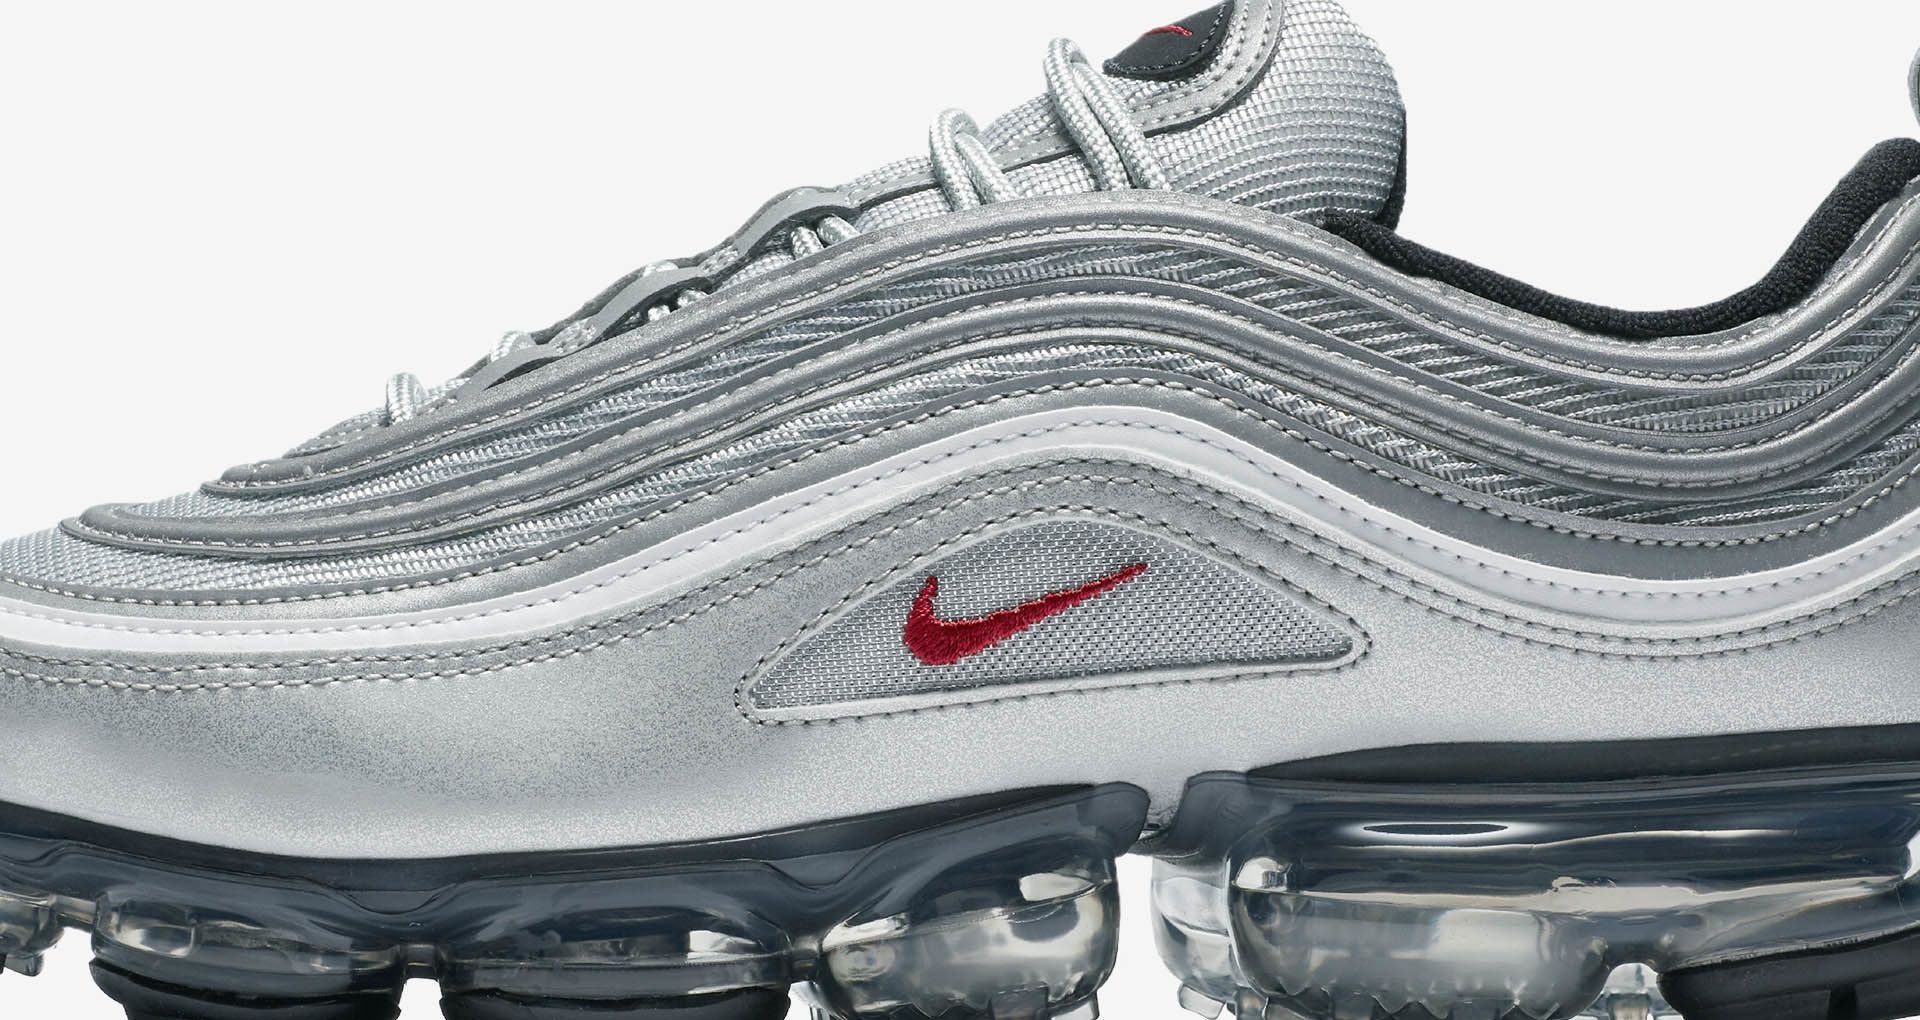 outlet store f6851 41a9b Nike Air Vapormax 97 'Metallic Silver & Varsity Red' Release ...